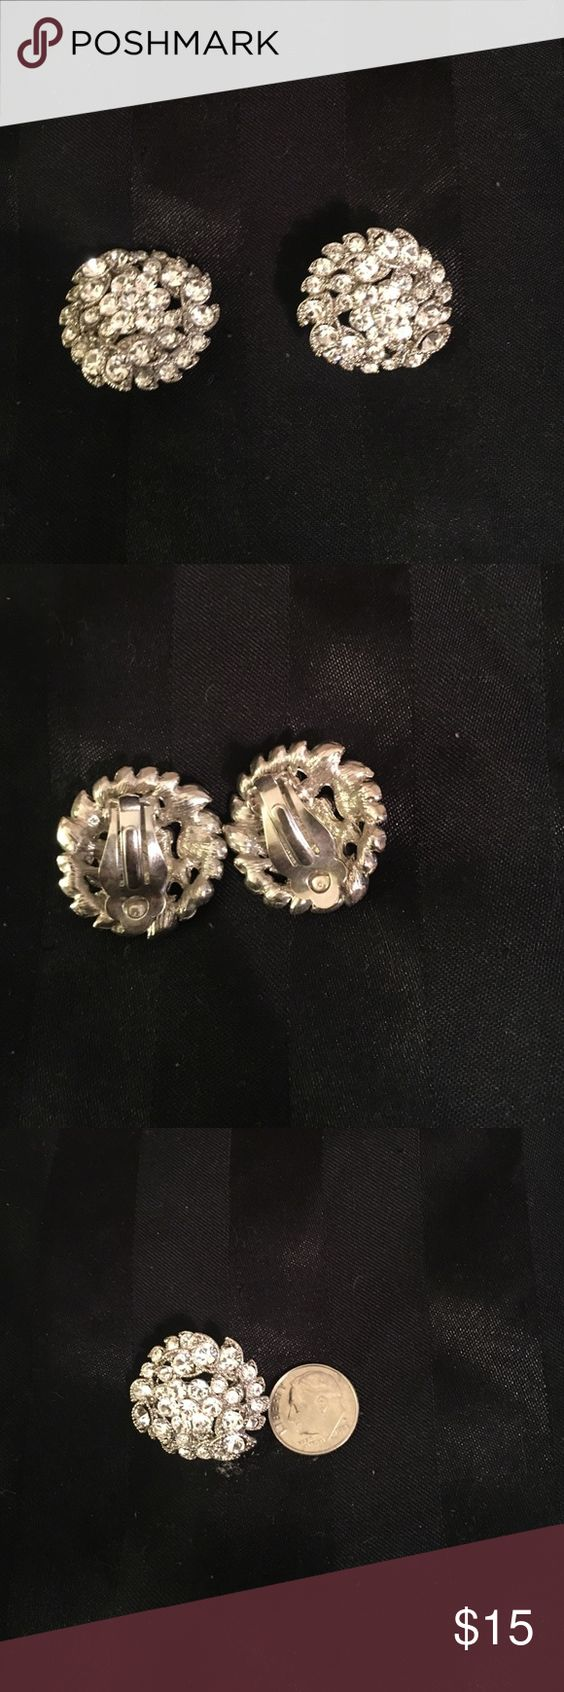 Rhinestone Costume Earrings  These Are Clip On